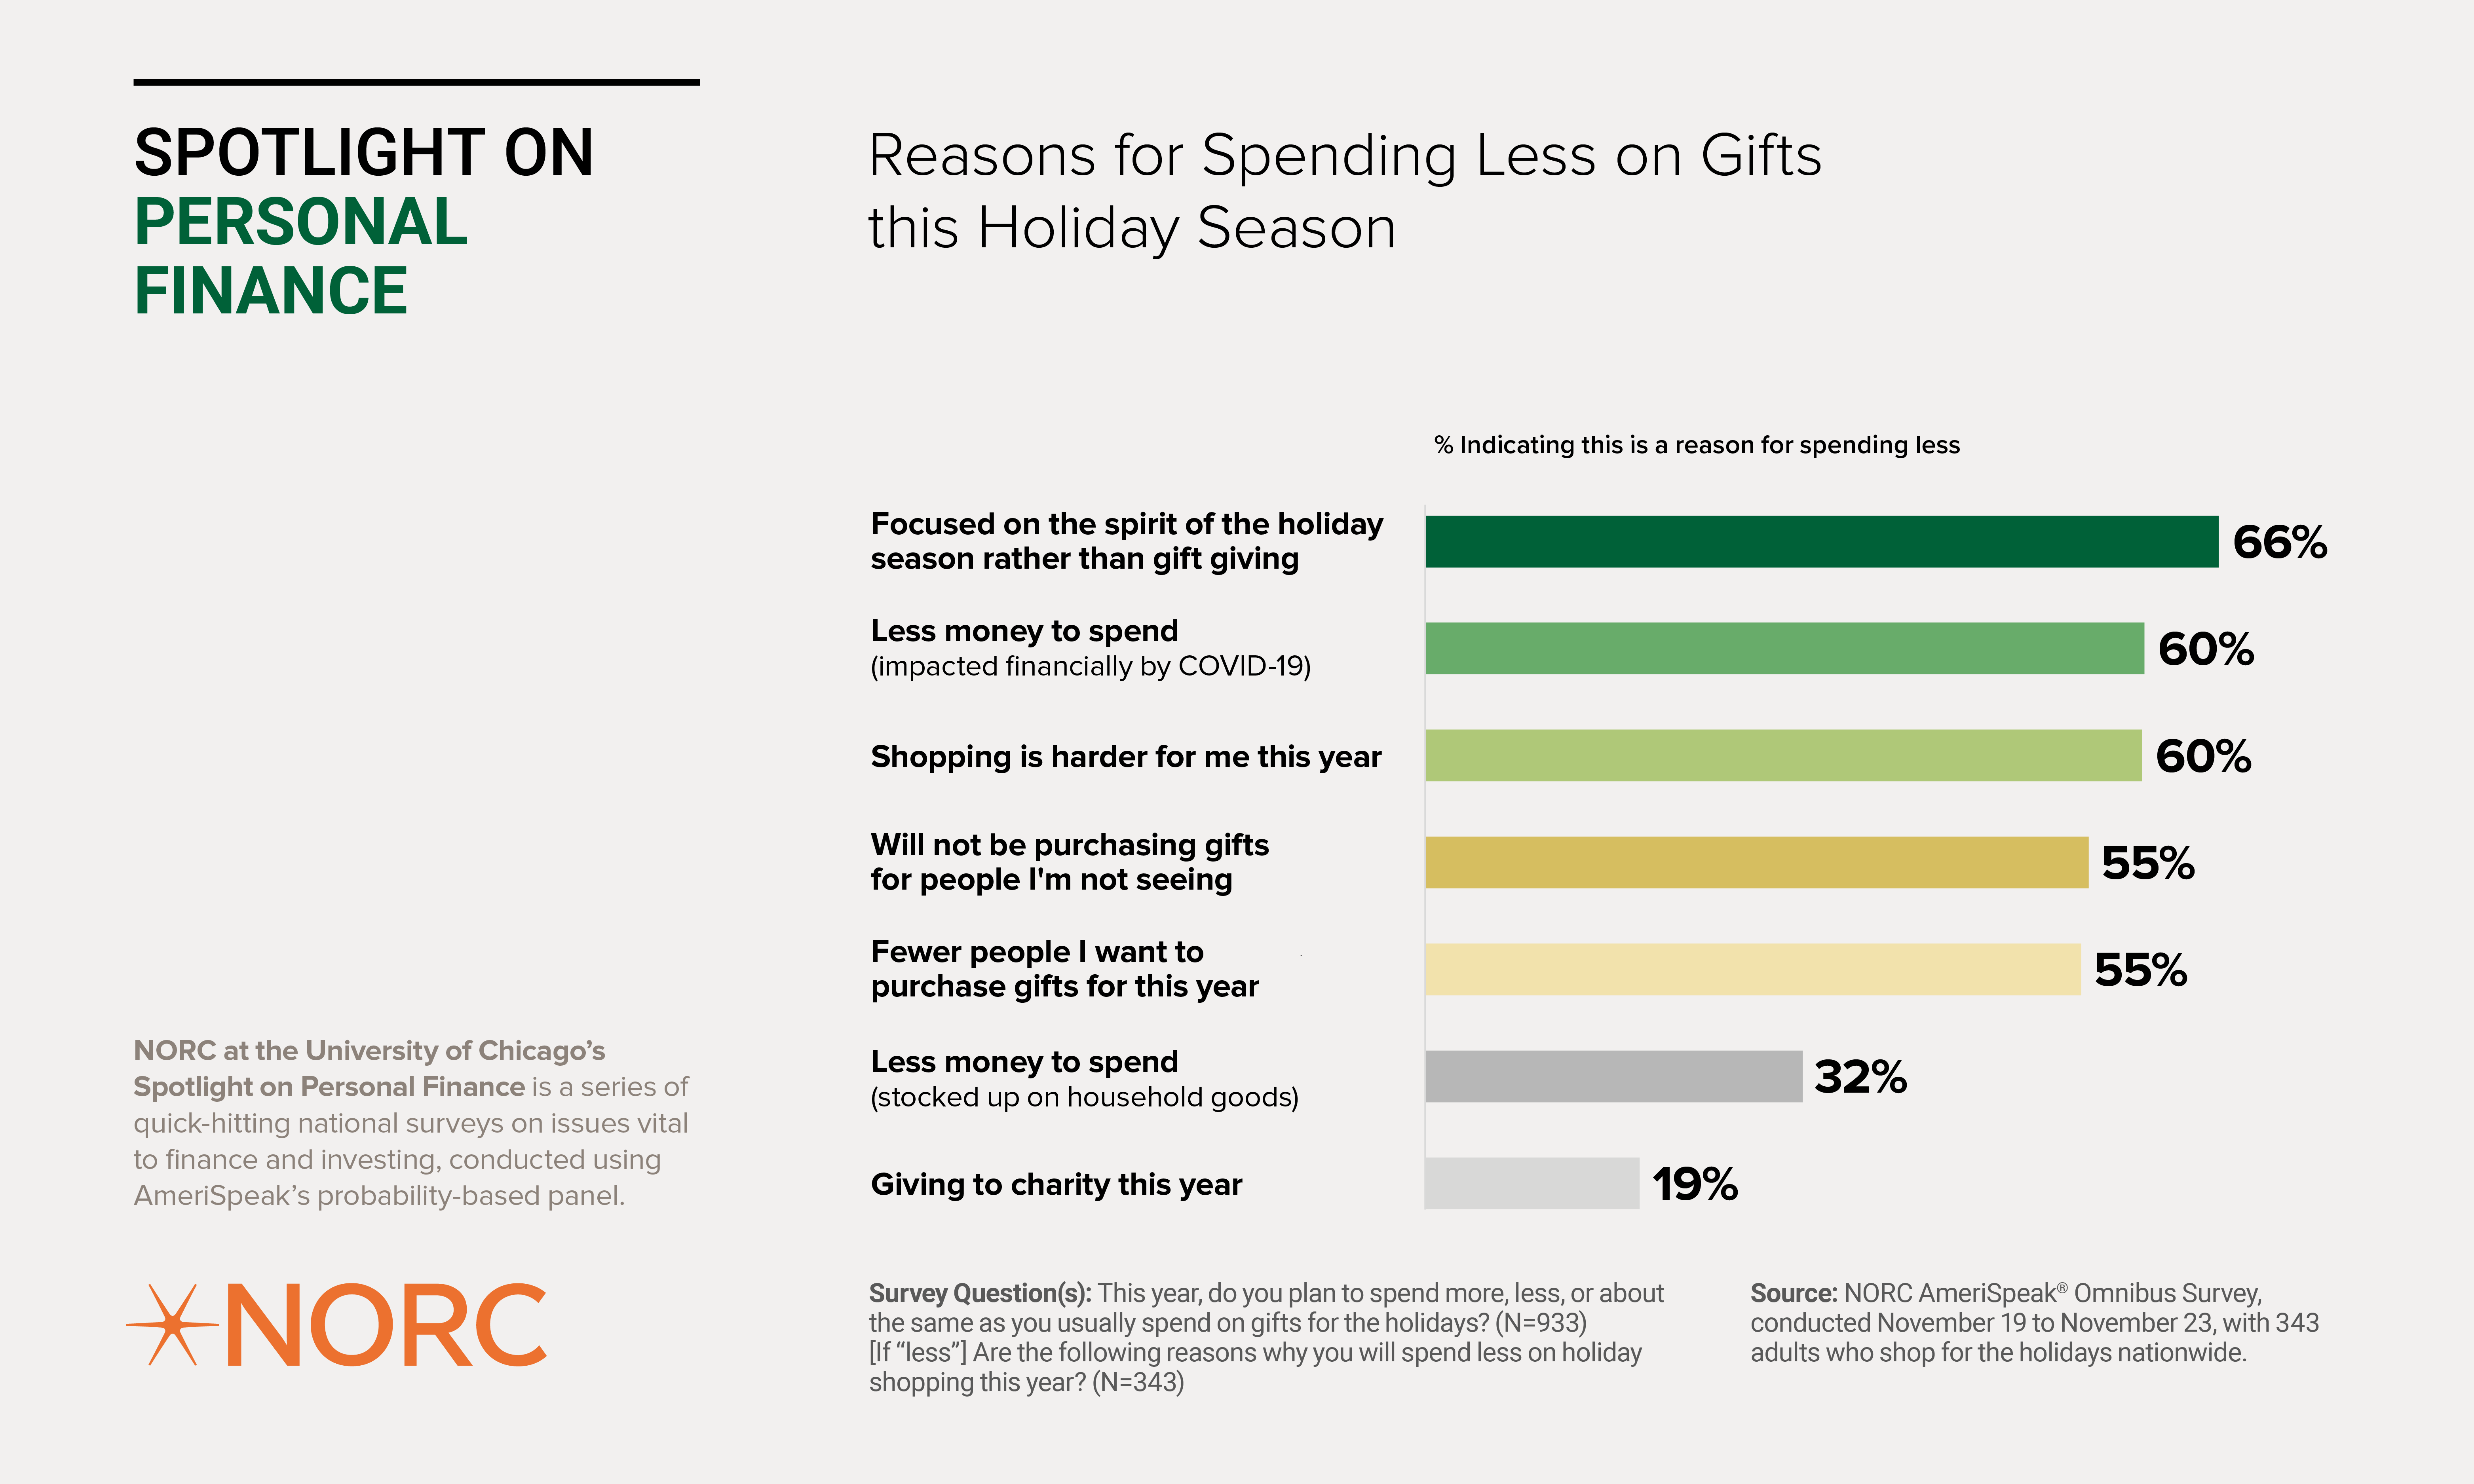 Reasons for Spending Less on Holiday Gifts this Season